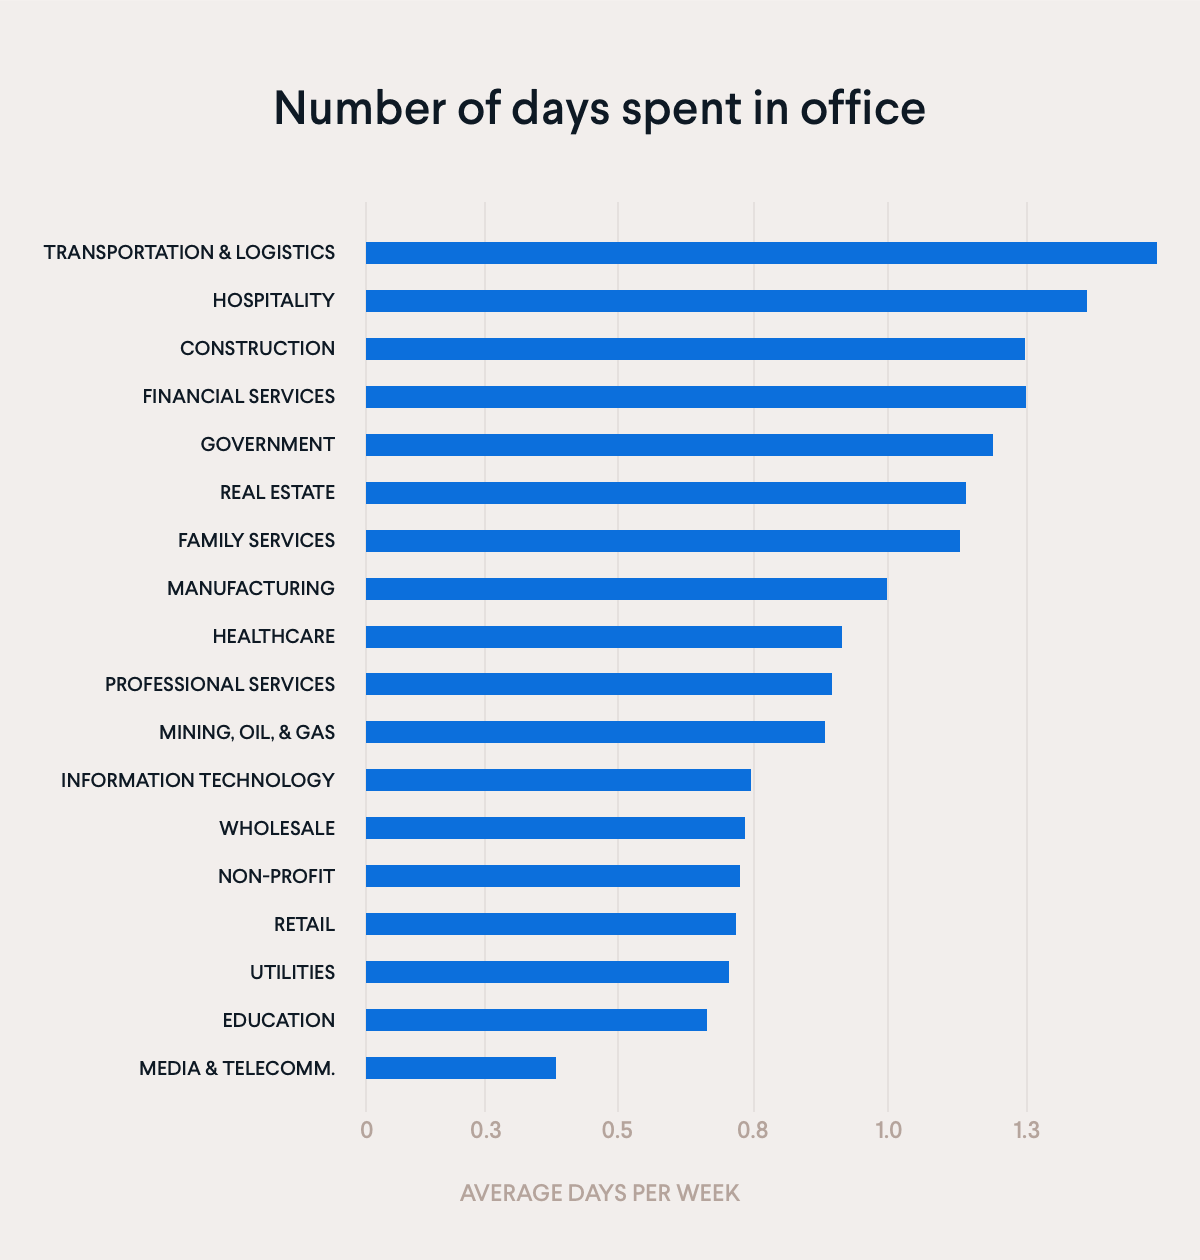 Number of days spent in office